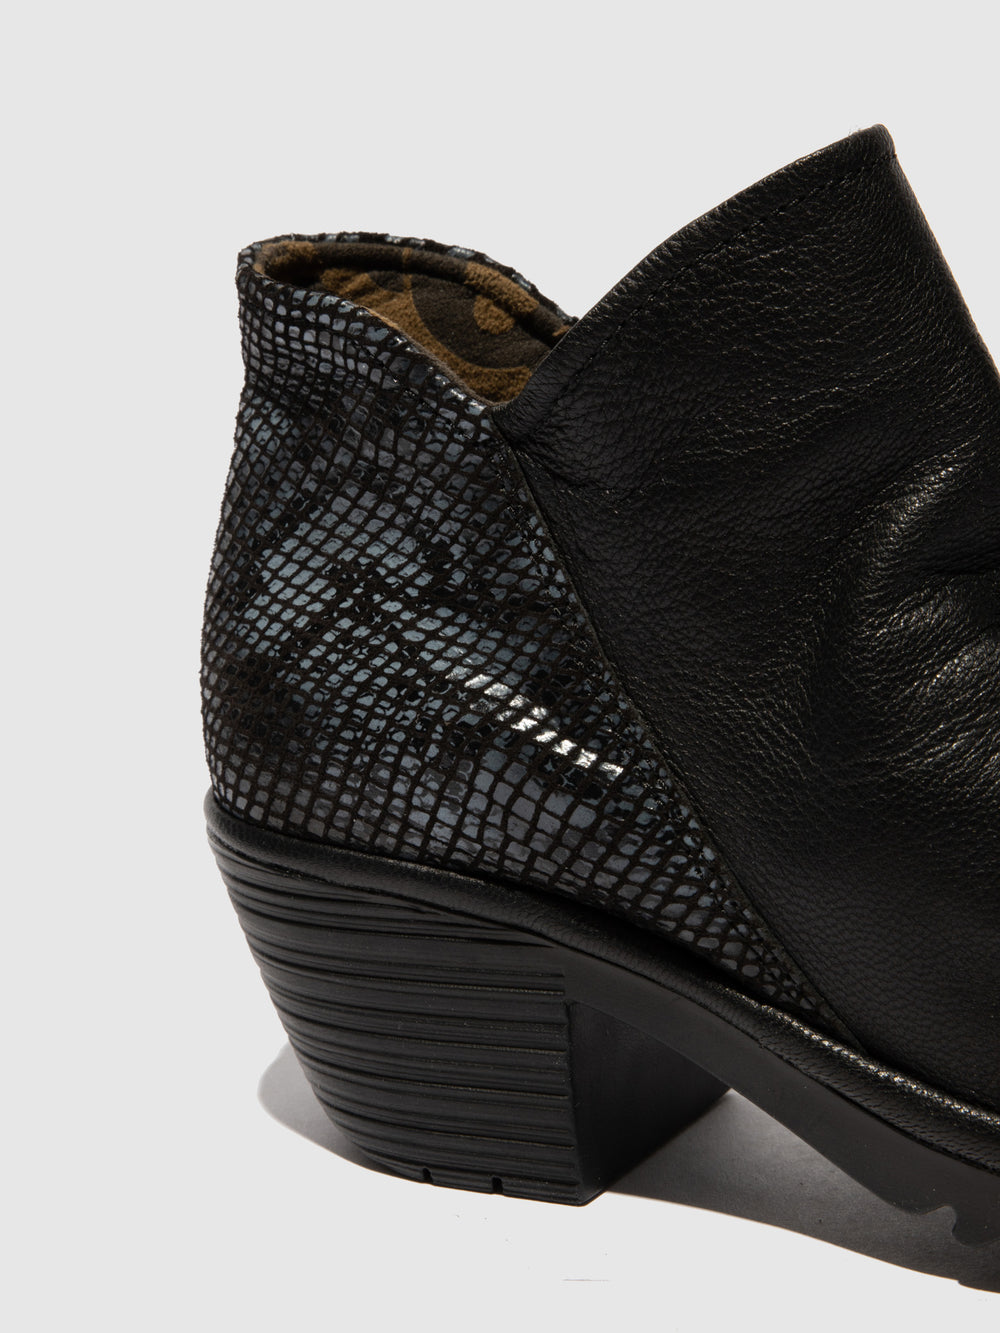 Zip Up Ankle Boots WEZO890FLY MOUSSE/SNAKE BLACK/BLACK(GREY)